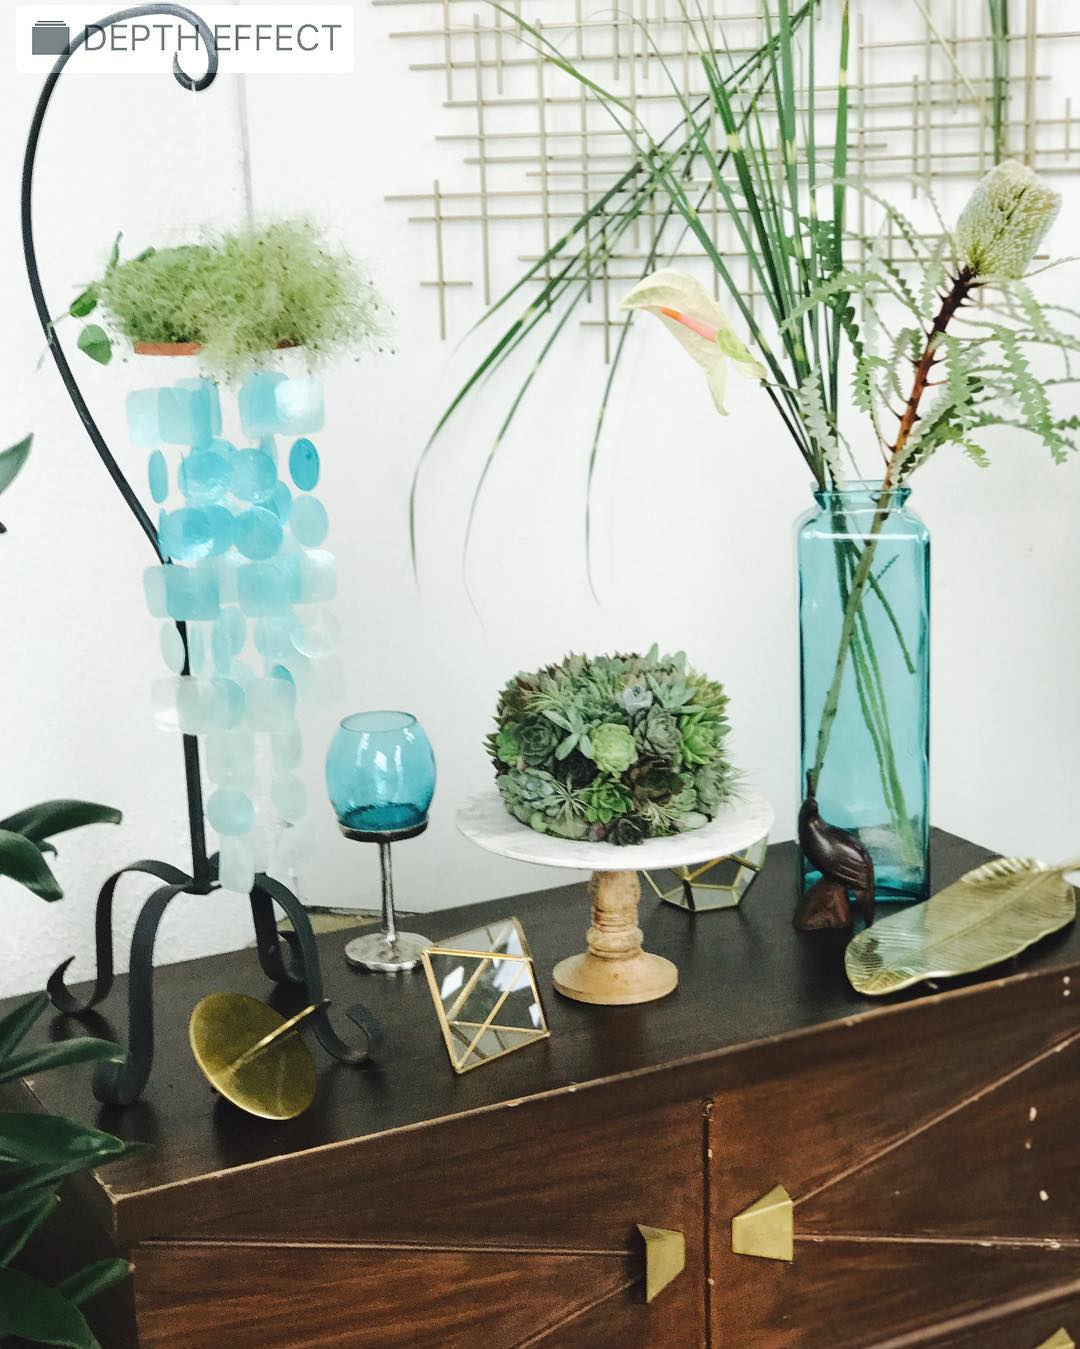 Adding the right piece of furniture can really make a difference in decor. I found this mid-century cedar chest at the Habitat for Humanity retail store and it brings just the right amount of cool to make all the lugging it around worth the effort?? . . #midcenturymodern #caketable #aqua #succulents #succulentcake #decor #getcreative #lotusfloraldesigns #weddingflorist #flowerartist